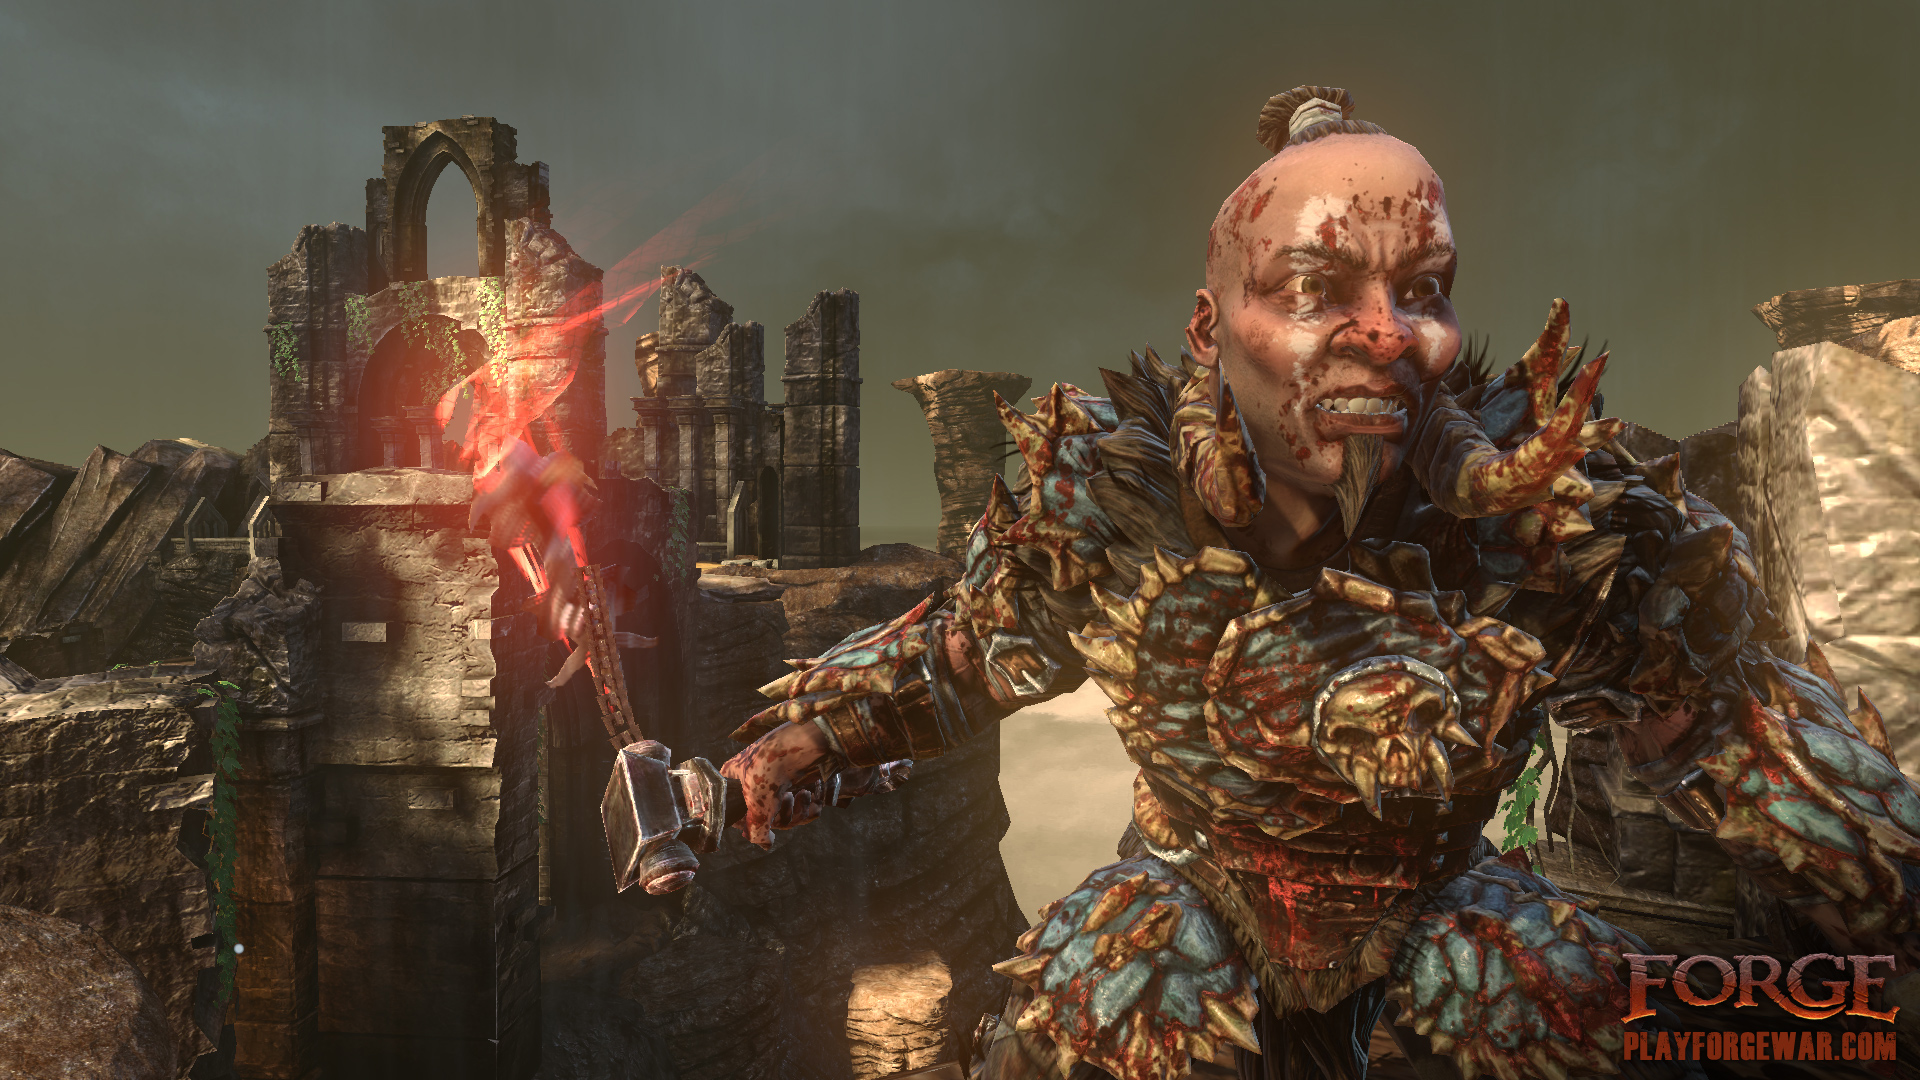 forge_screen_ravager_03